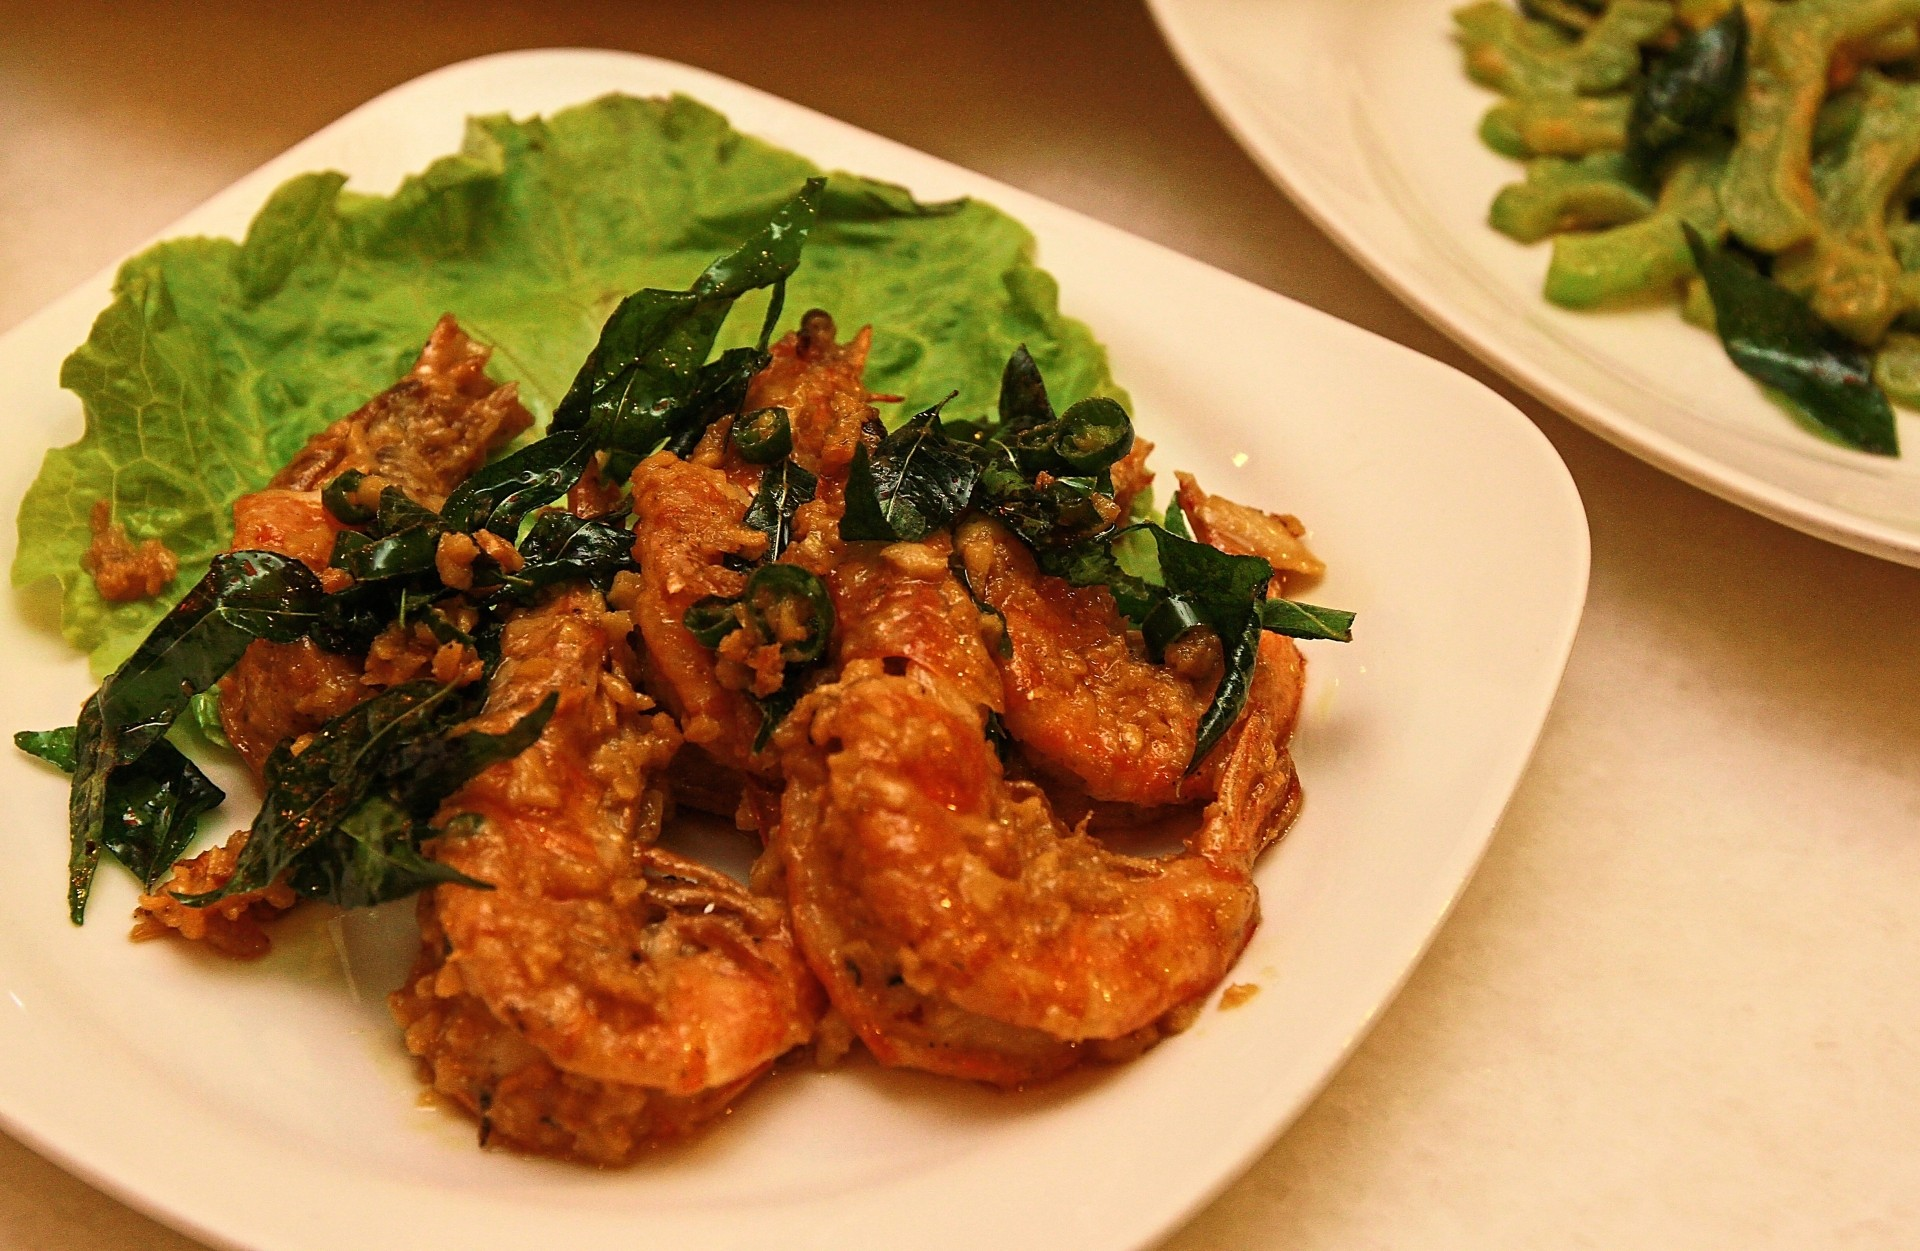 The House special Prawns includes Chong's own twist to the recipe, the addition of evaporated milk.